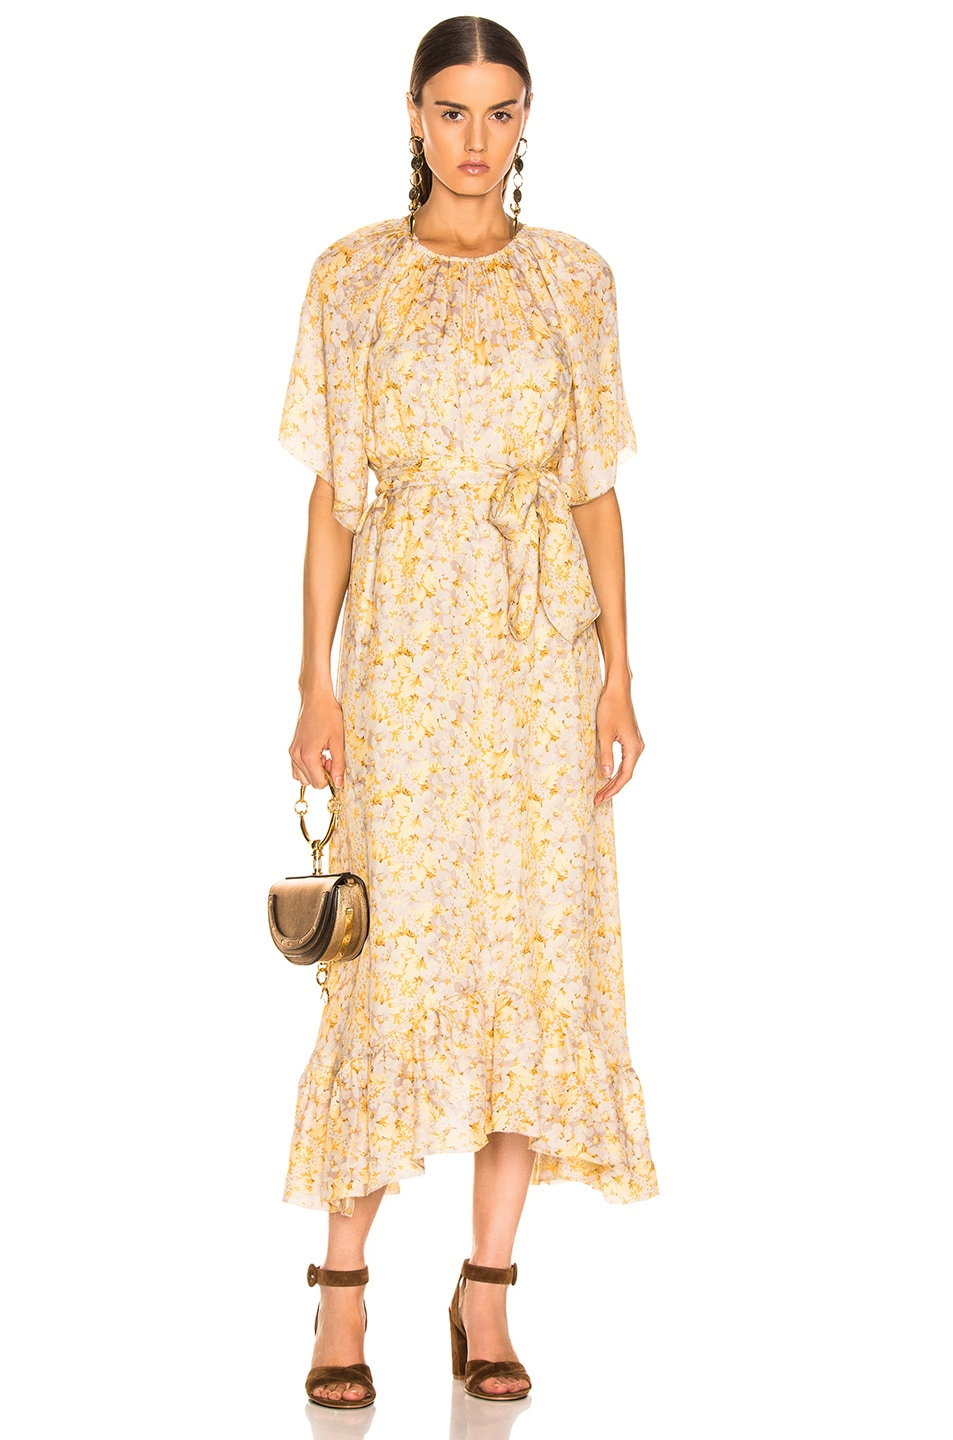 Image 1 of The Great Flutter Sleeve Dress With Belt in Buttercup Floral